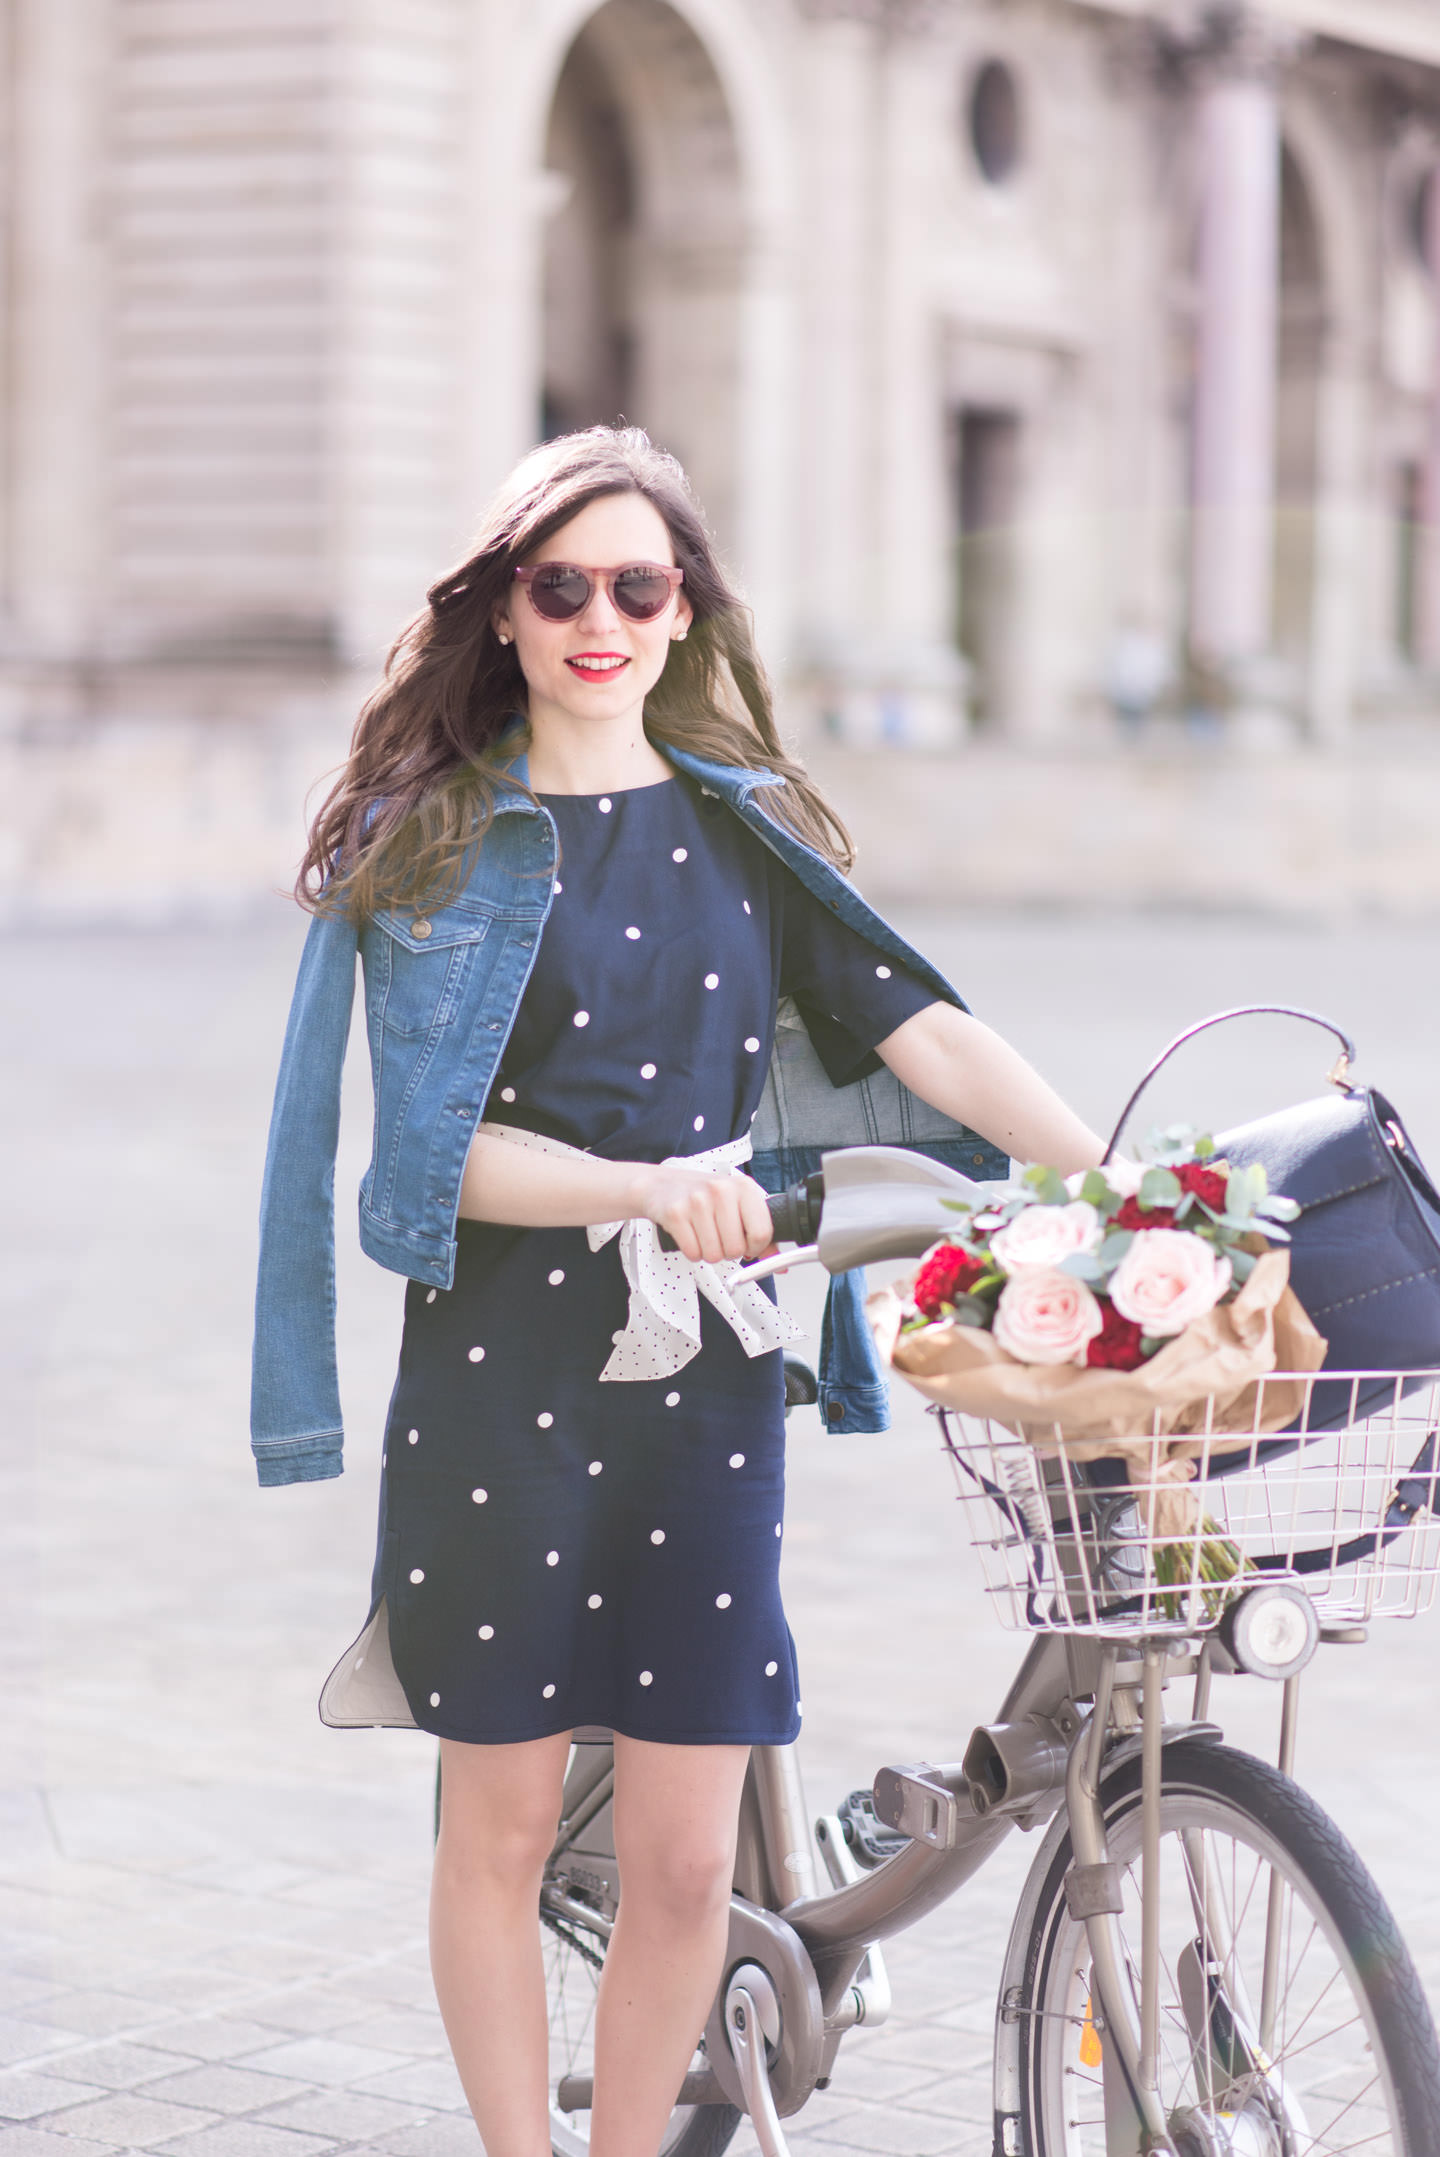 Le printemps avec boden mode and the city for Boden mode gutscheincode